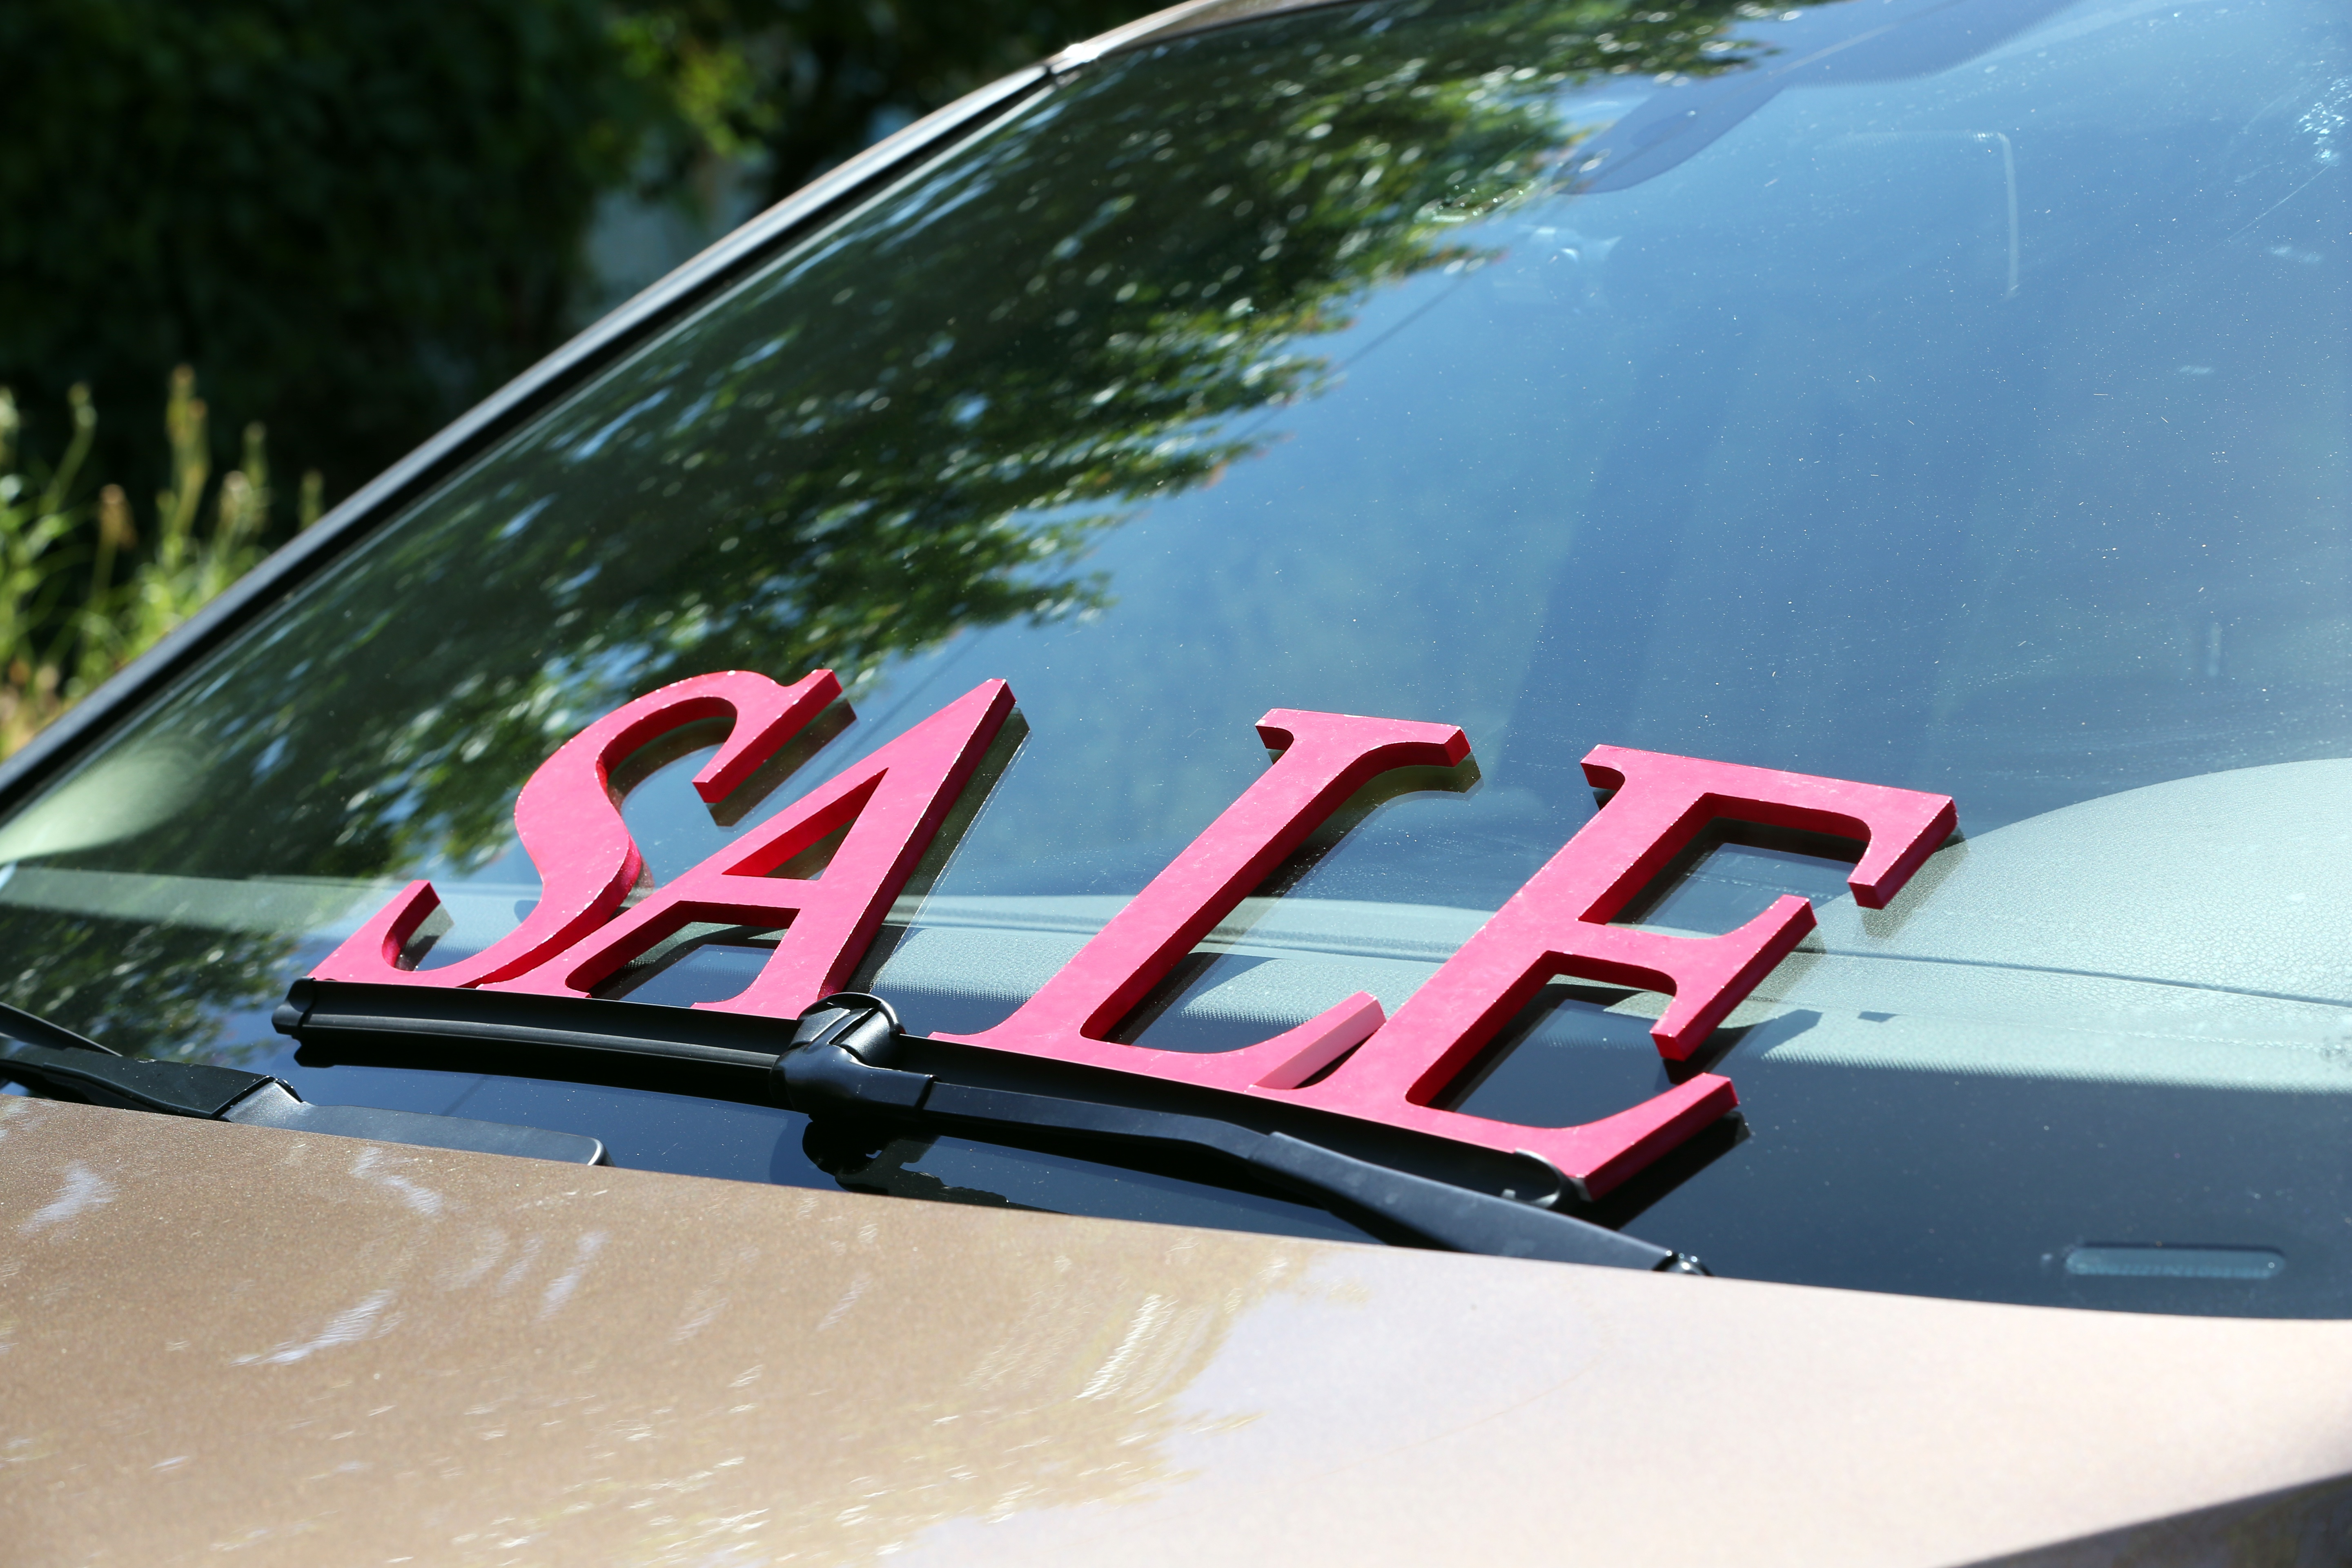 Do I Need A Dealer License To Sell Cars?